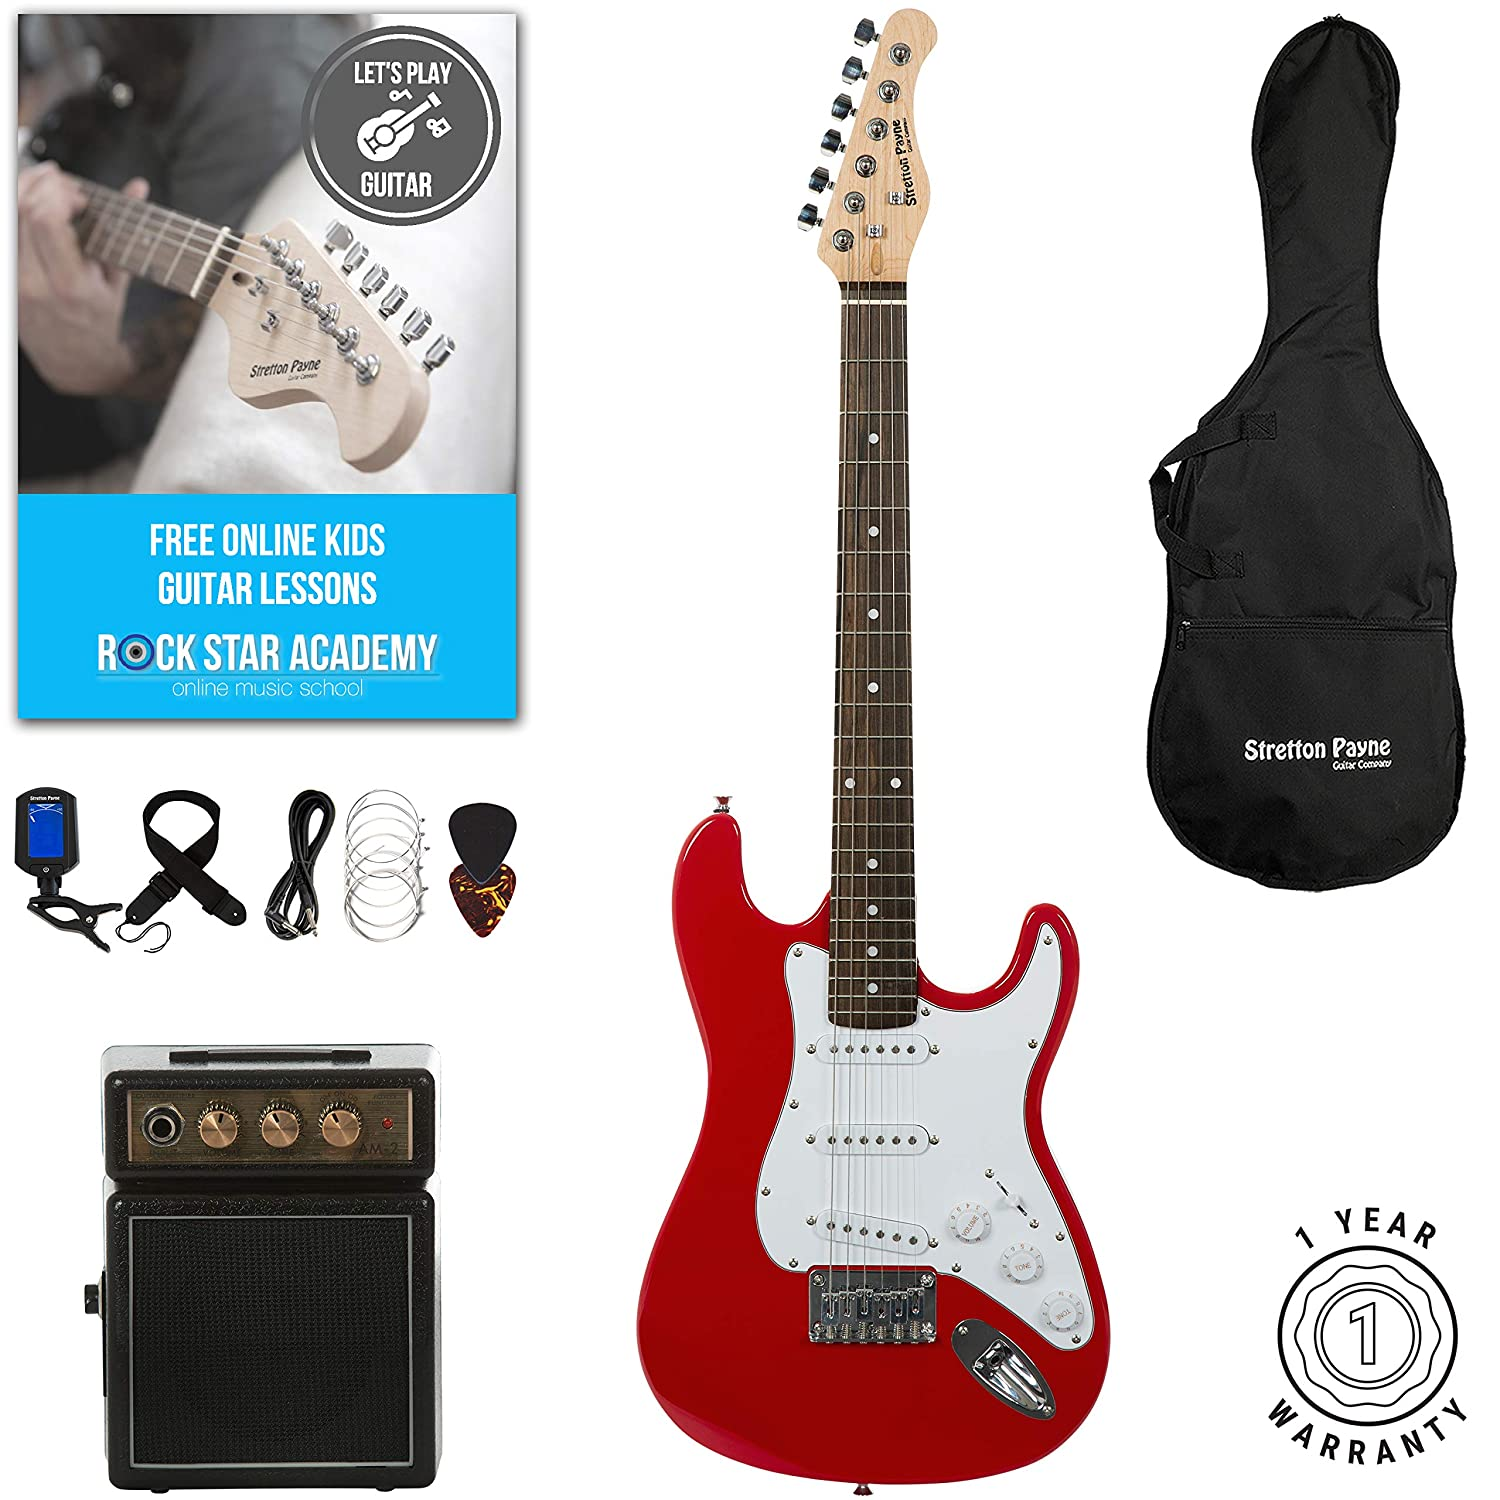 Stretton Payne 7/8 Size Electric Guitar with practice amplifier, padded bag, strap, lead, plectrum, tuner, spare strings. Guitar in Black SPE78BK